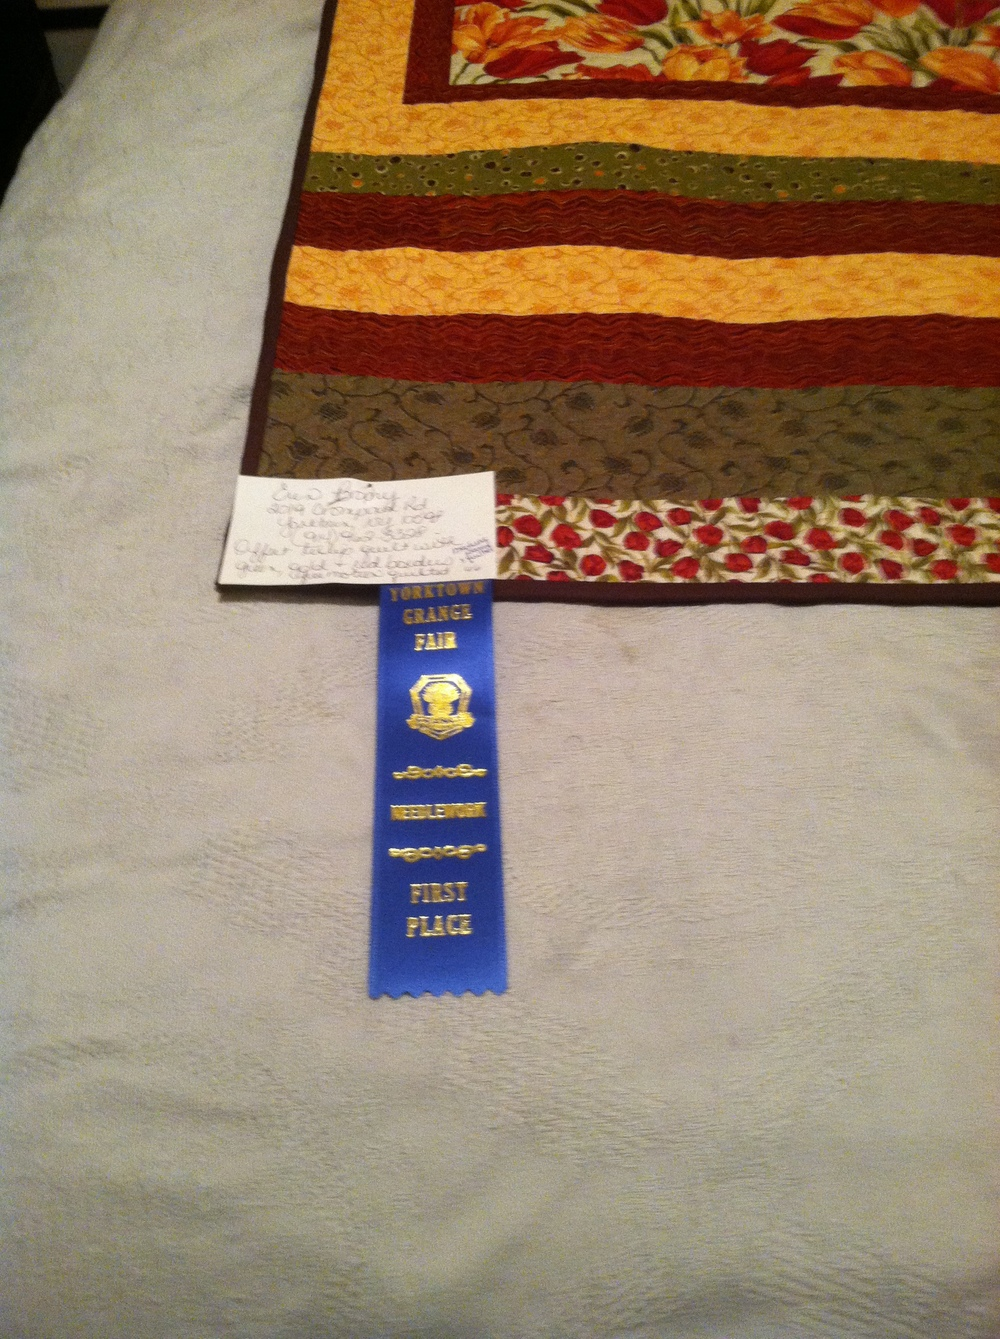 My Apex quilt won a Blue Ribbon